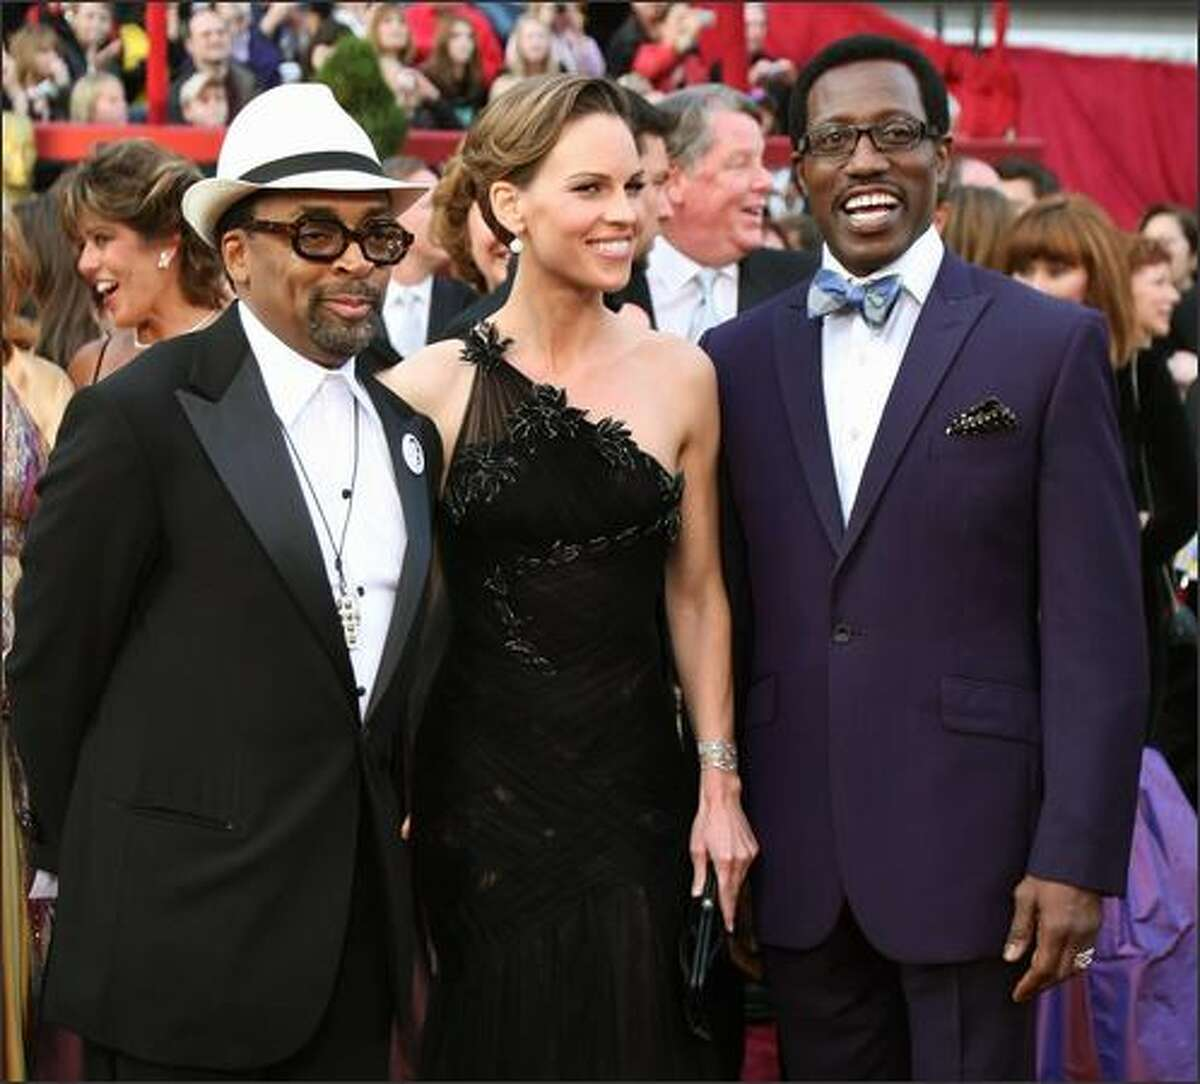 Spike Lee, Hillary Swank and Wesley Snipes arrives for the 80th Annual Academy Awards at the Kodak Theater in Hollywood, California.